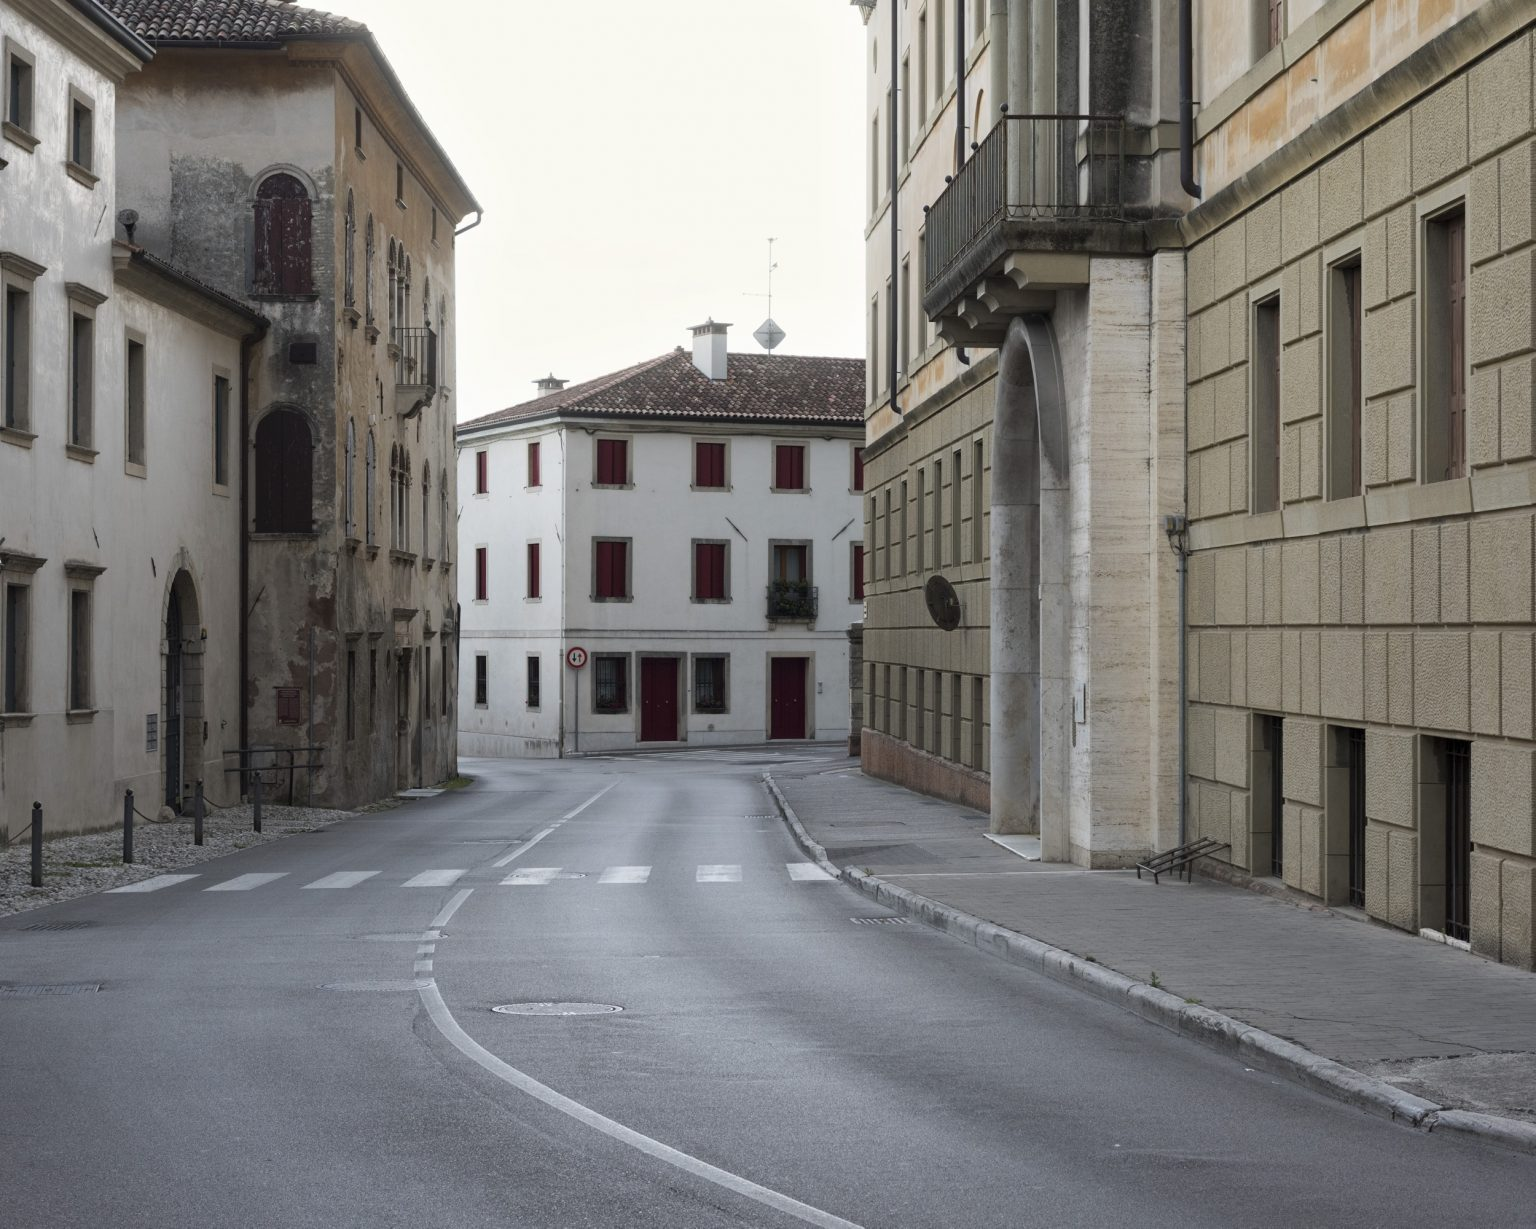 The Piave Legend. In Vittorio Veneto the last armed conflict took place between Italy and the Austro-Hungarian Empire in October 1918, before the end of the war. The road along which the victorious Italian troops entered the city.